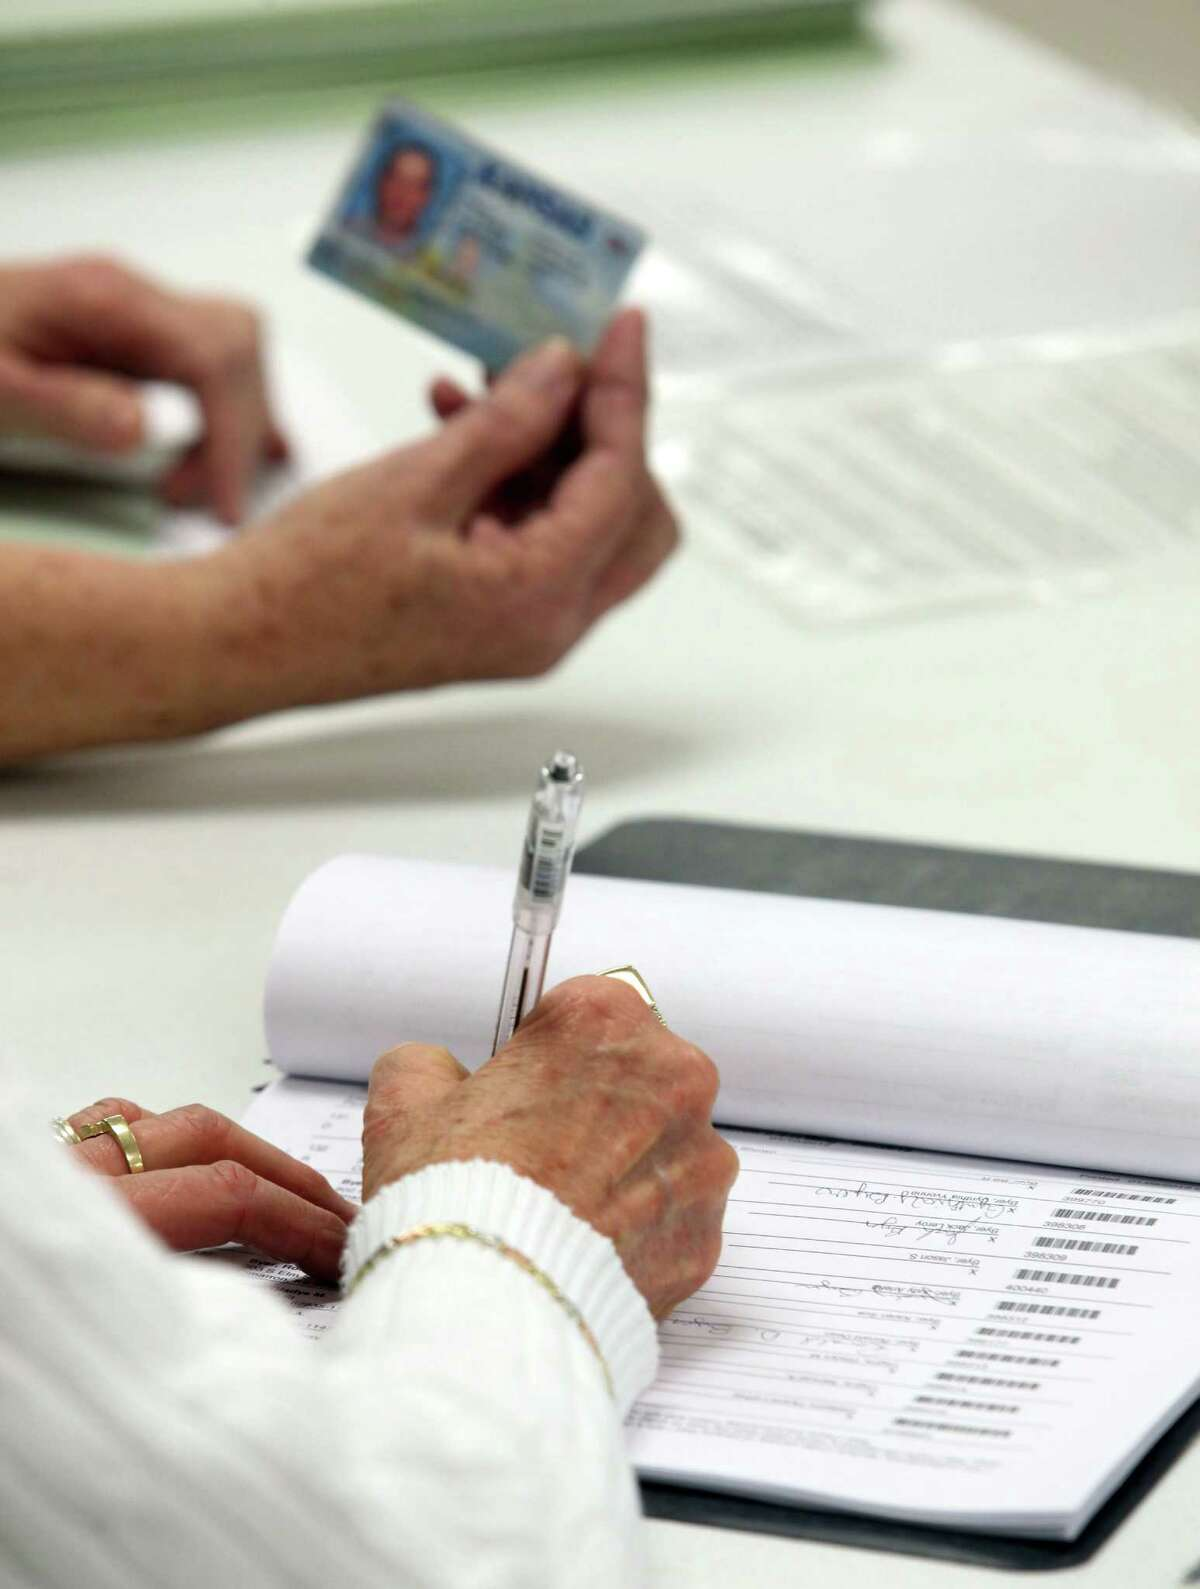 Election official checks the photo identification card of a voter (AP file photo)